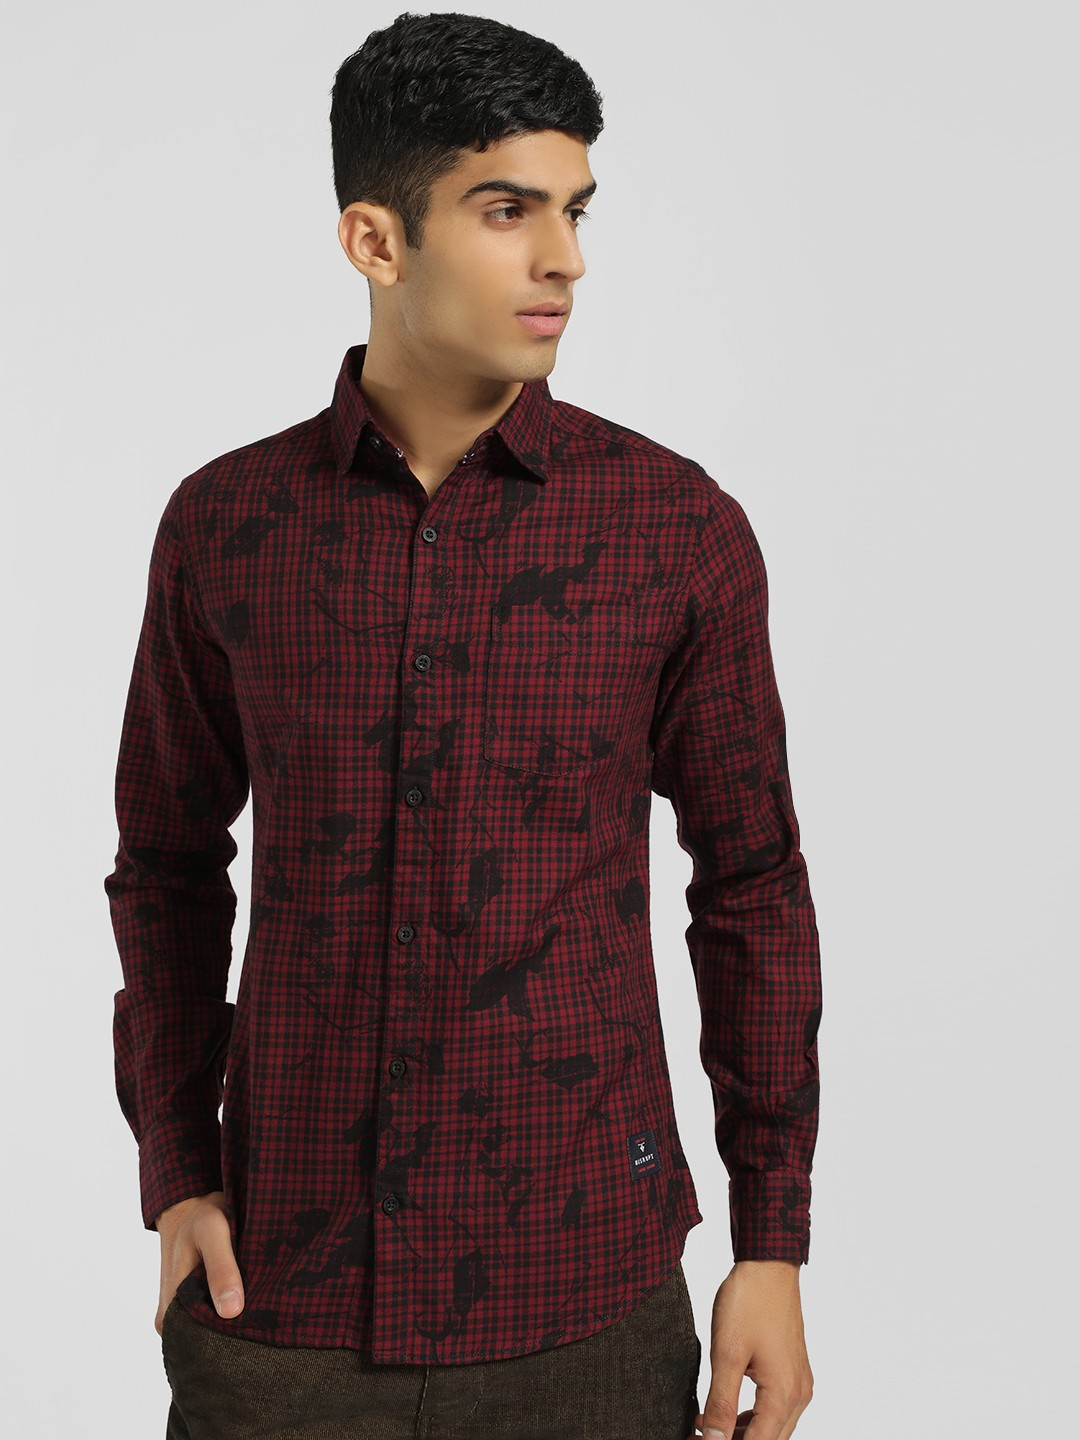 Disrupt Red Check Floral Print Casual Shirt 1